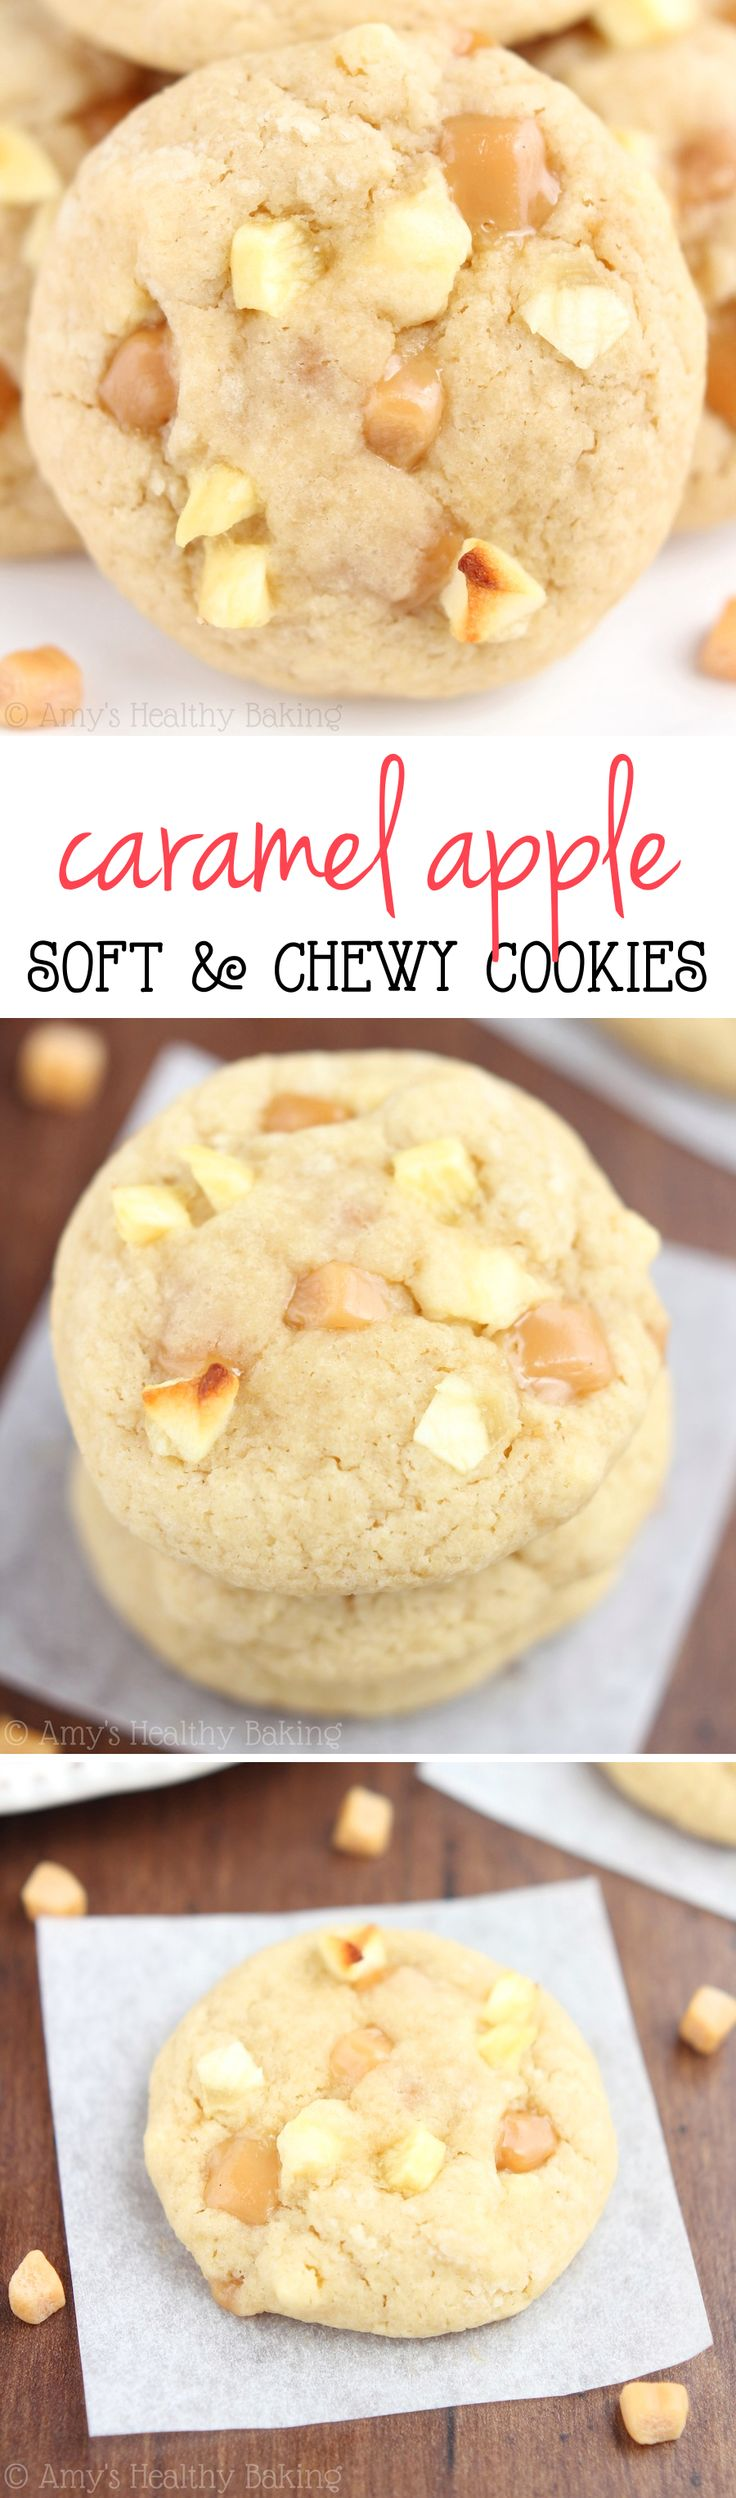 Caramel Apple Cookies -- so chewy & even better than regular caramel apples! Barely 100 calories!